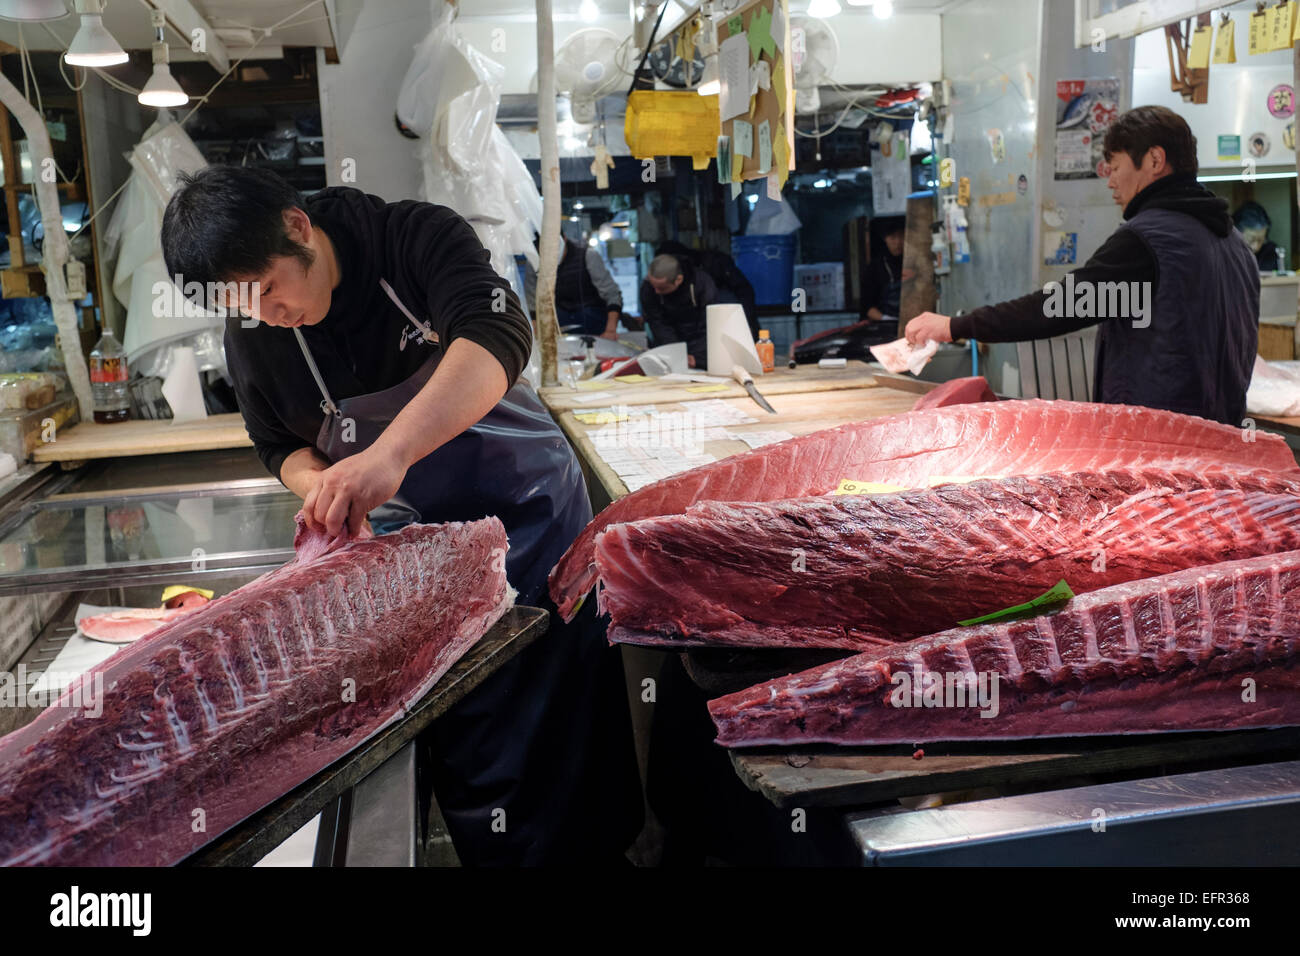 Stock Photo The Tsukiji Fish Market Tokyo Japan The Largest Wholesale Fish And Seafood Market In The World The Market Handles More Than 400 Types Of